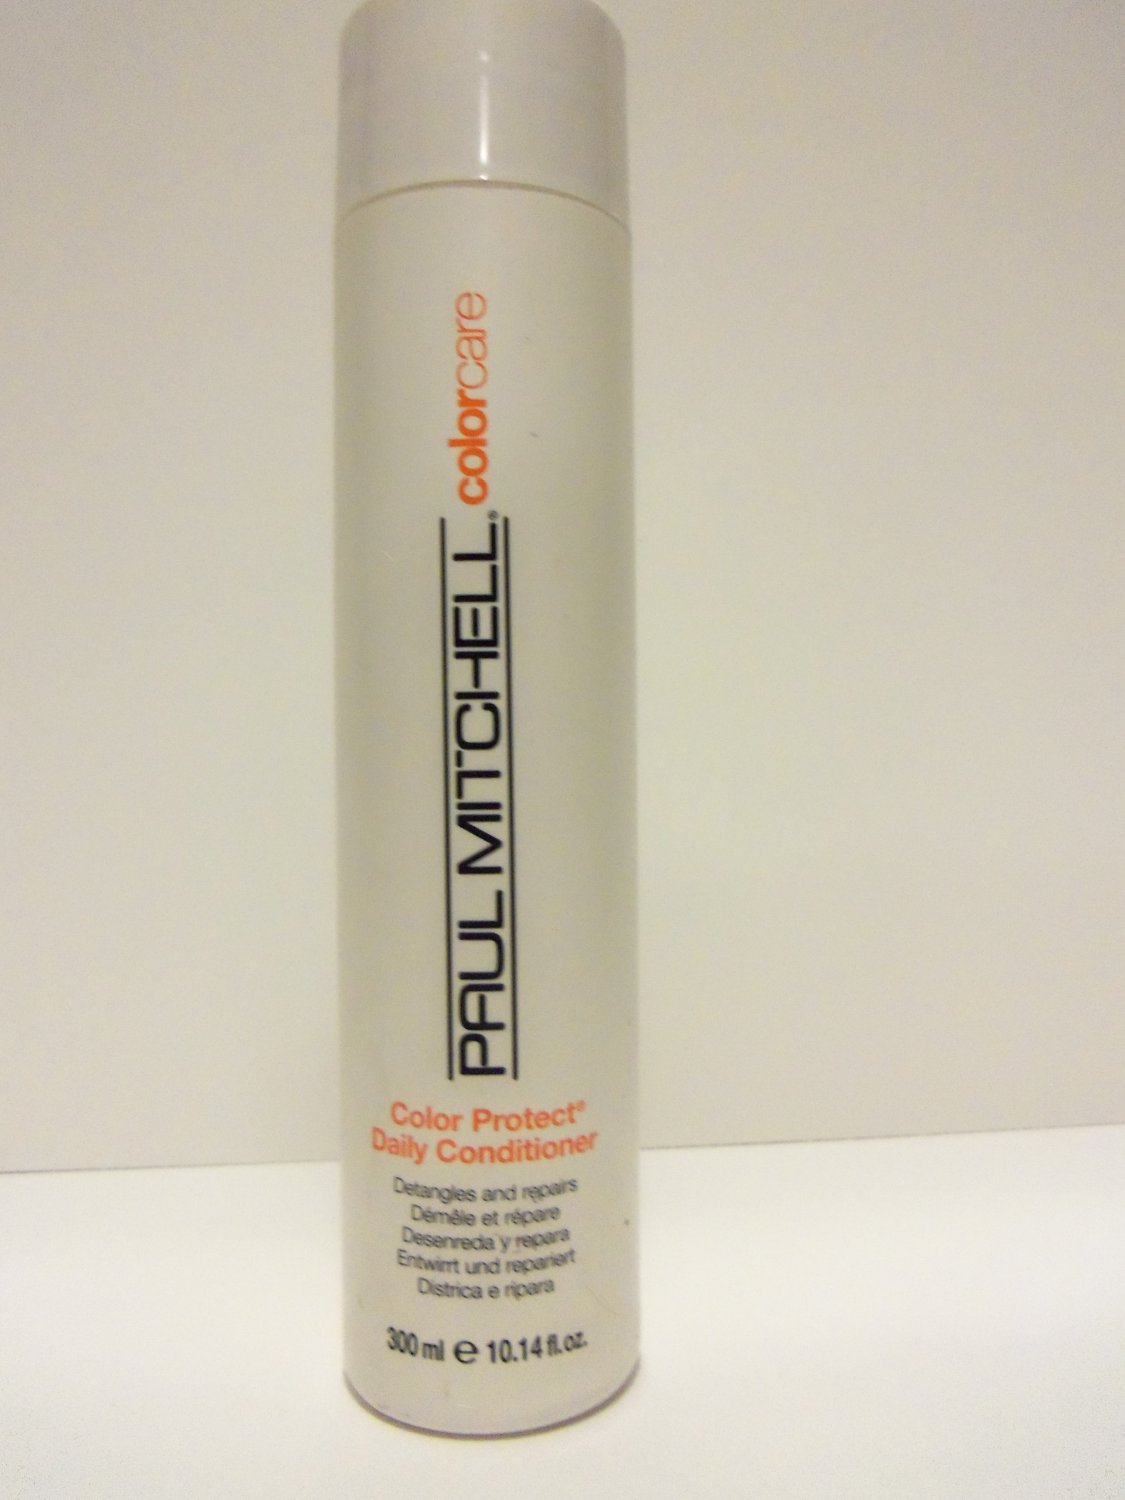 Paul Mitchell Colorcare Color Protect Daily Conditioner 10.14